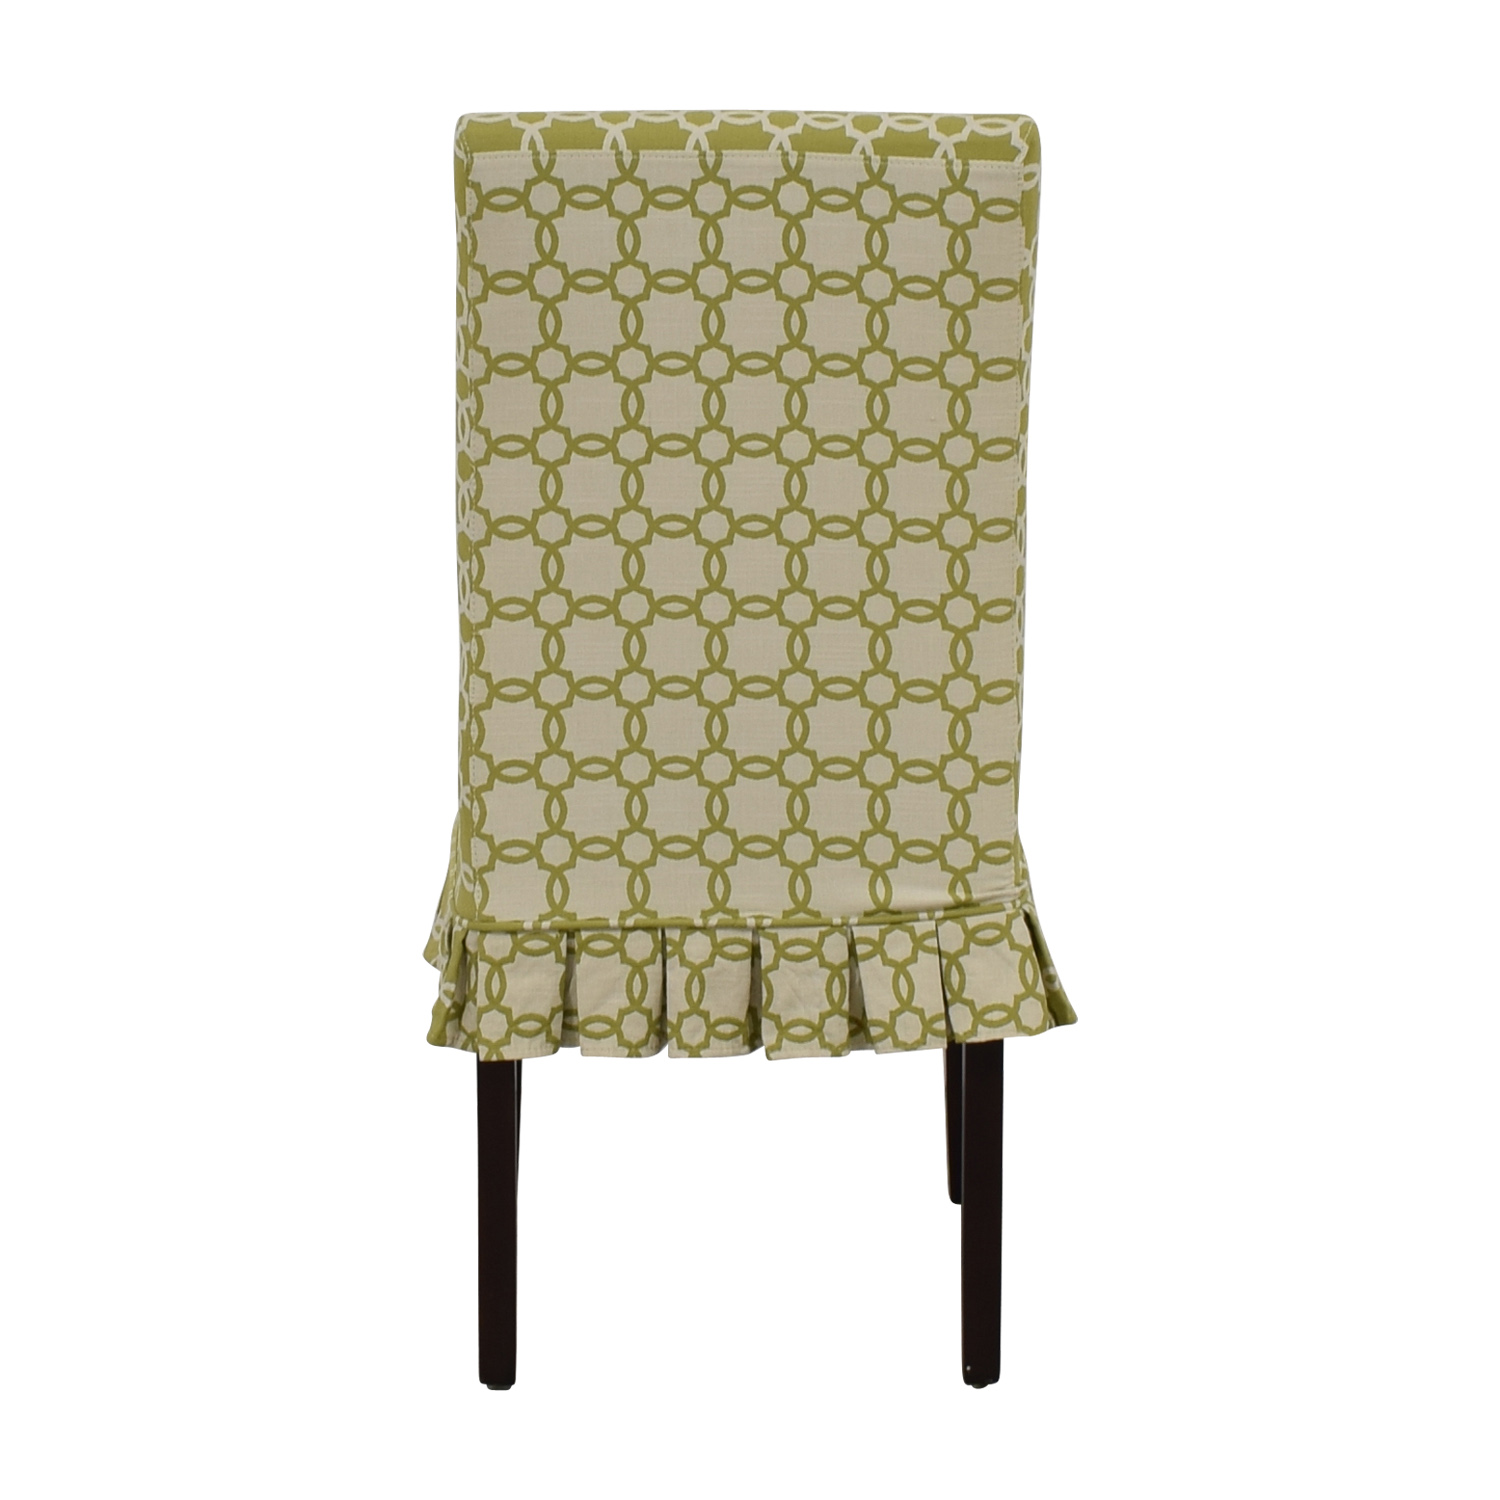 Pier 1 Green Accent Chair Pier 1